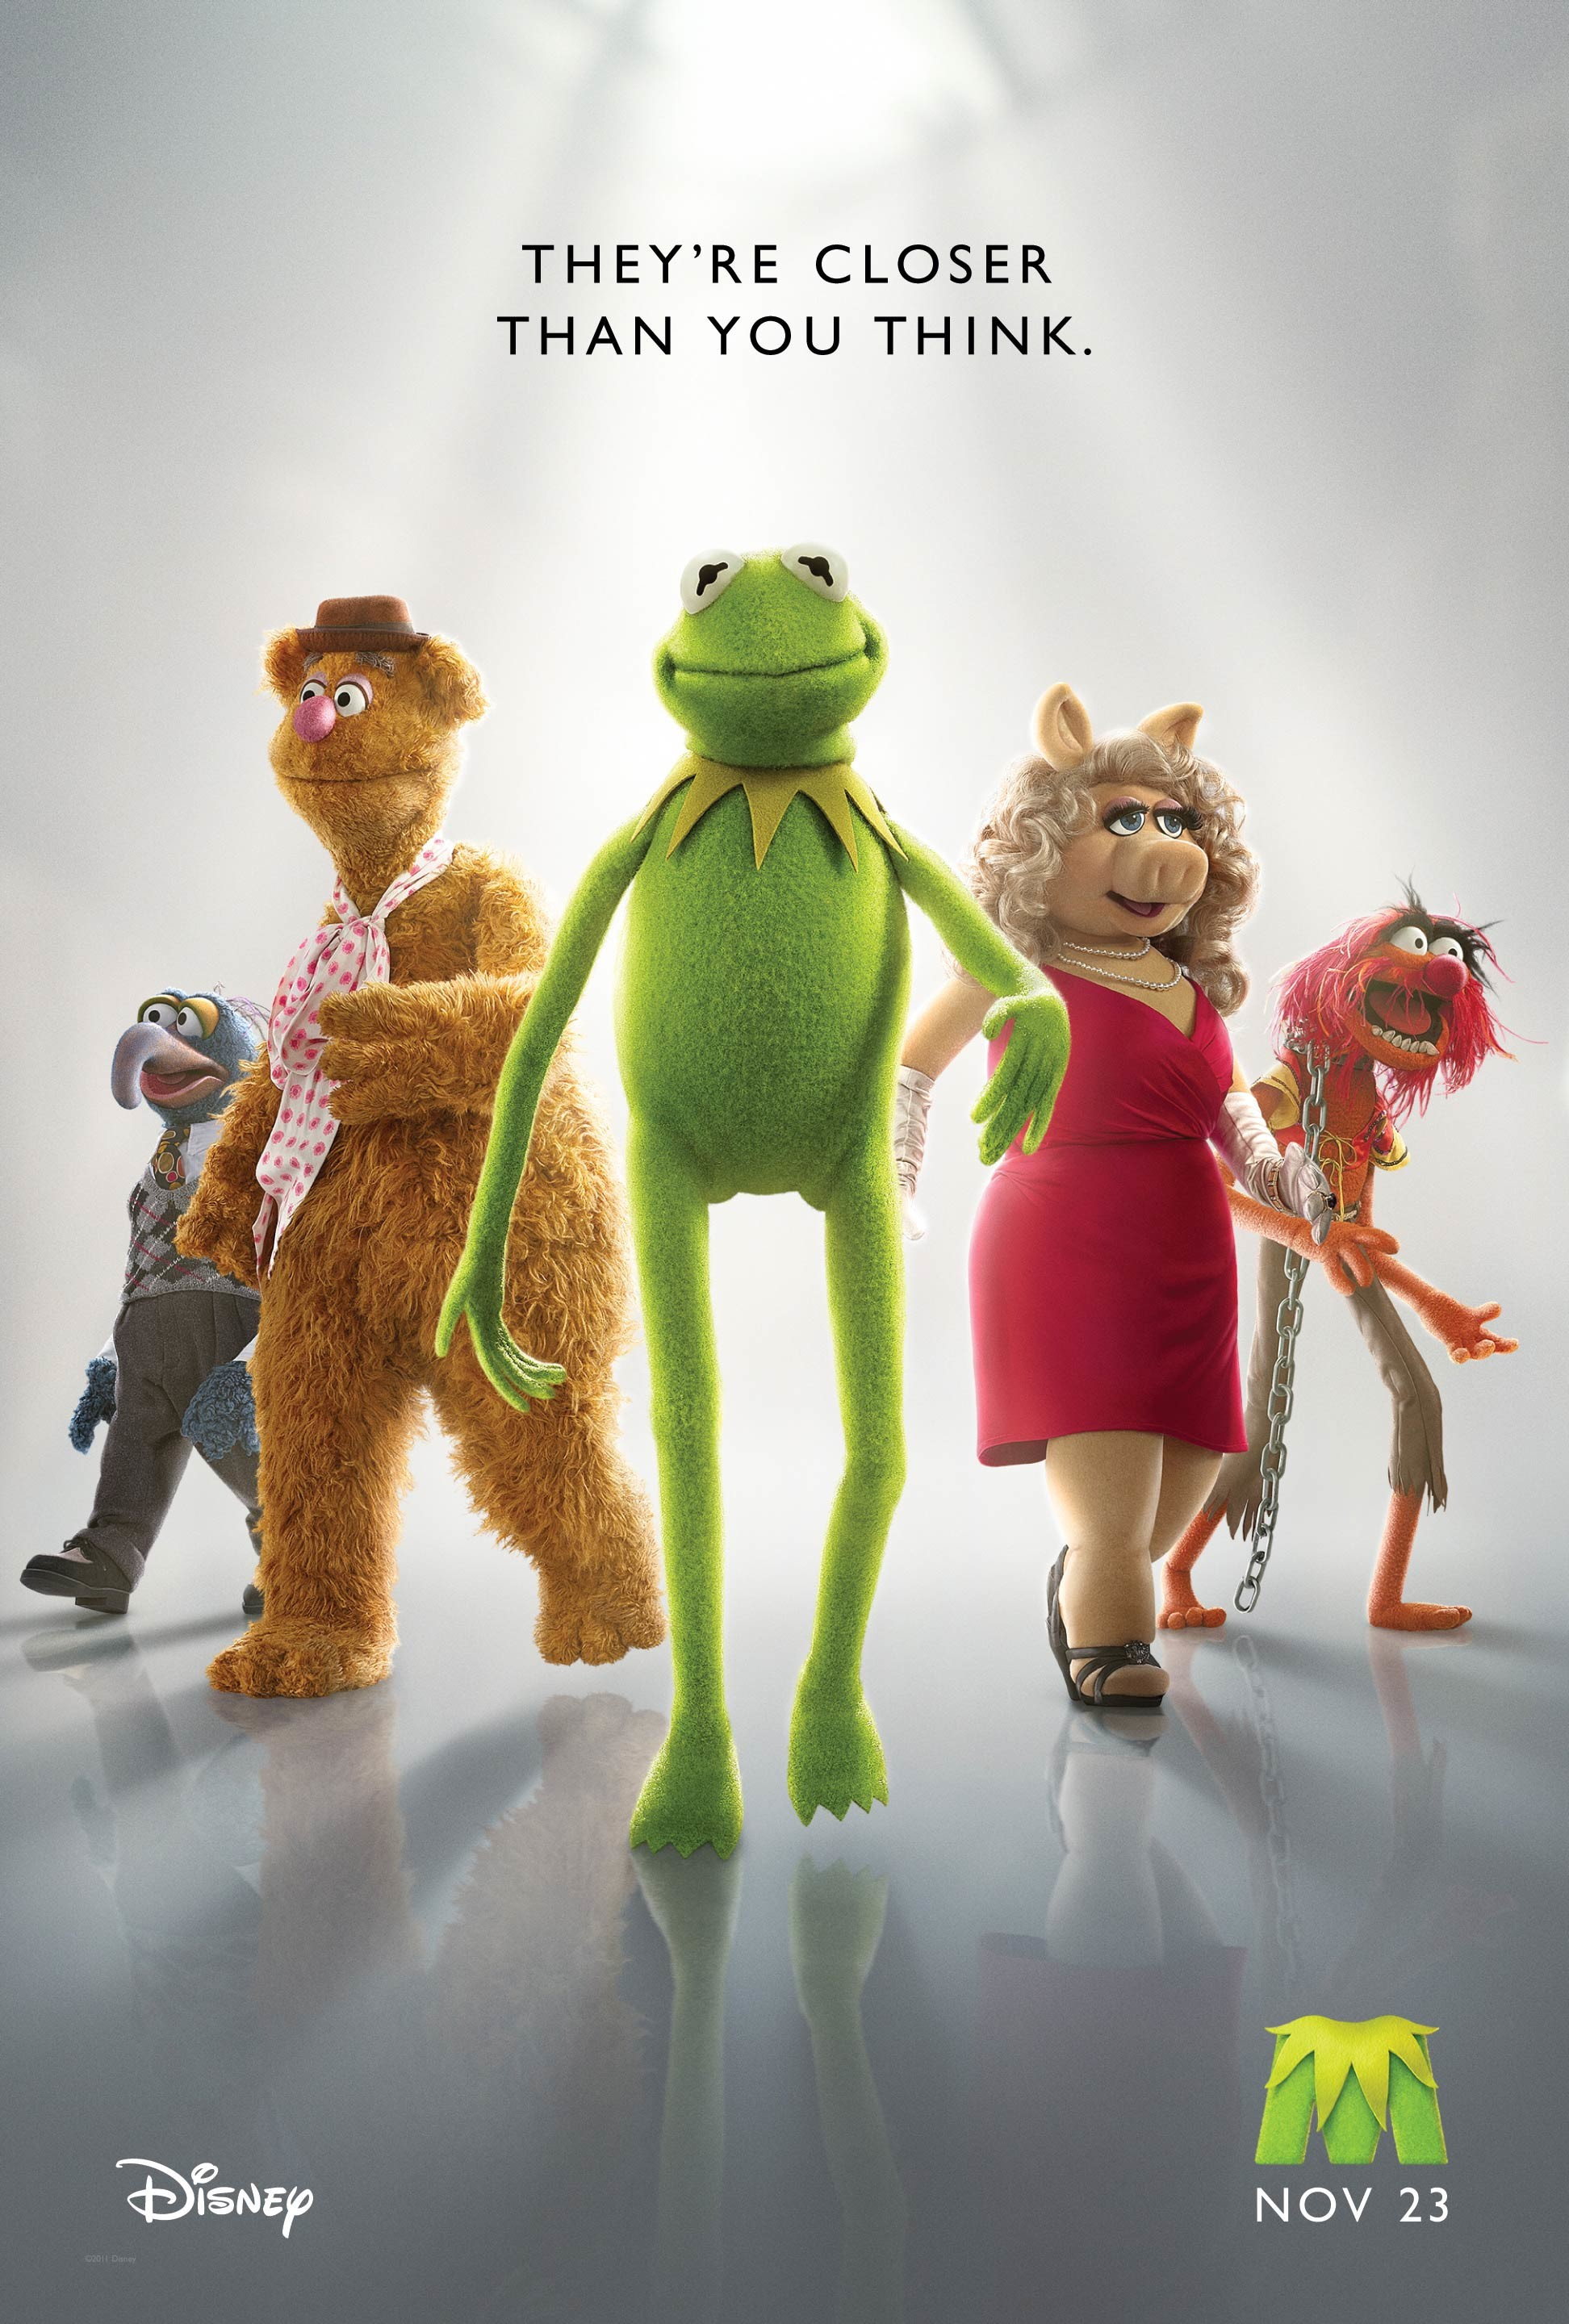 Res: 1944x2880, main Muppet characters from the 2011 Muppets movie wallpaper